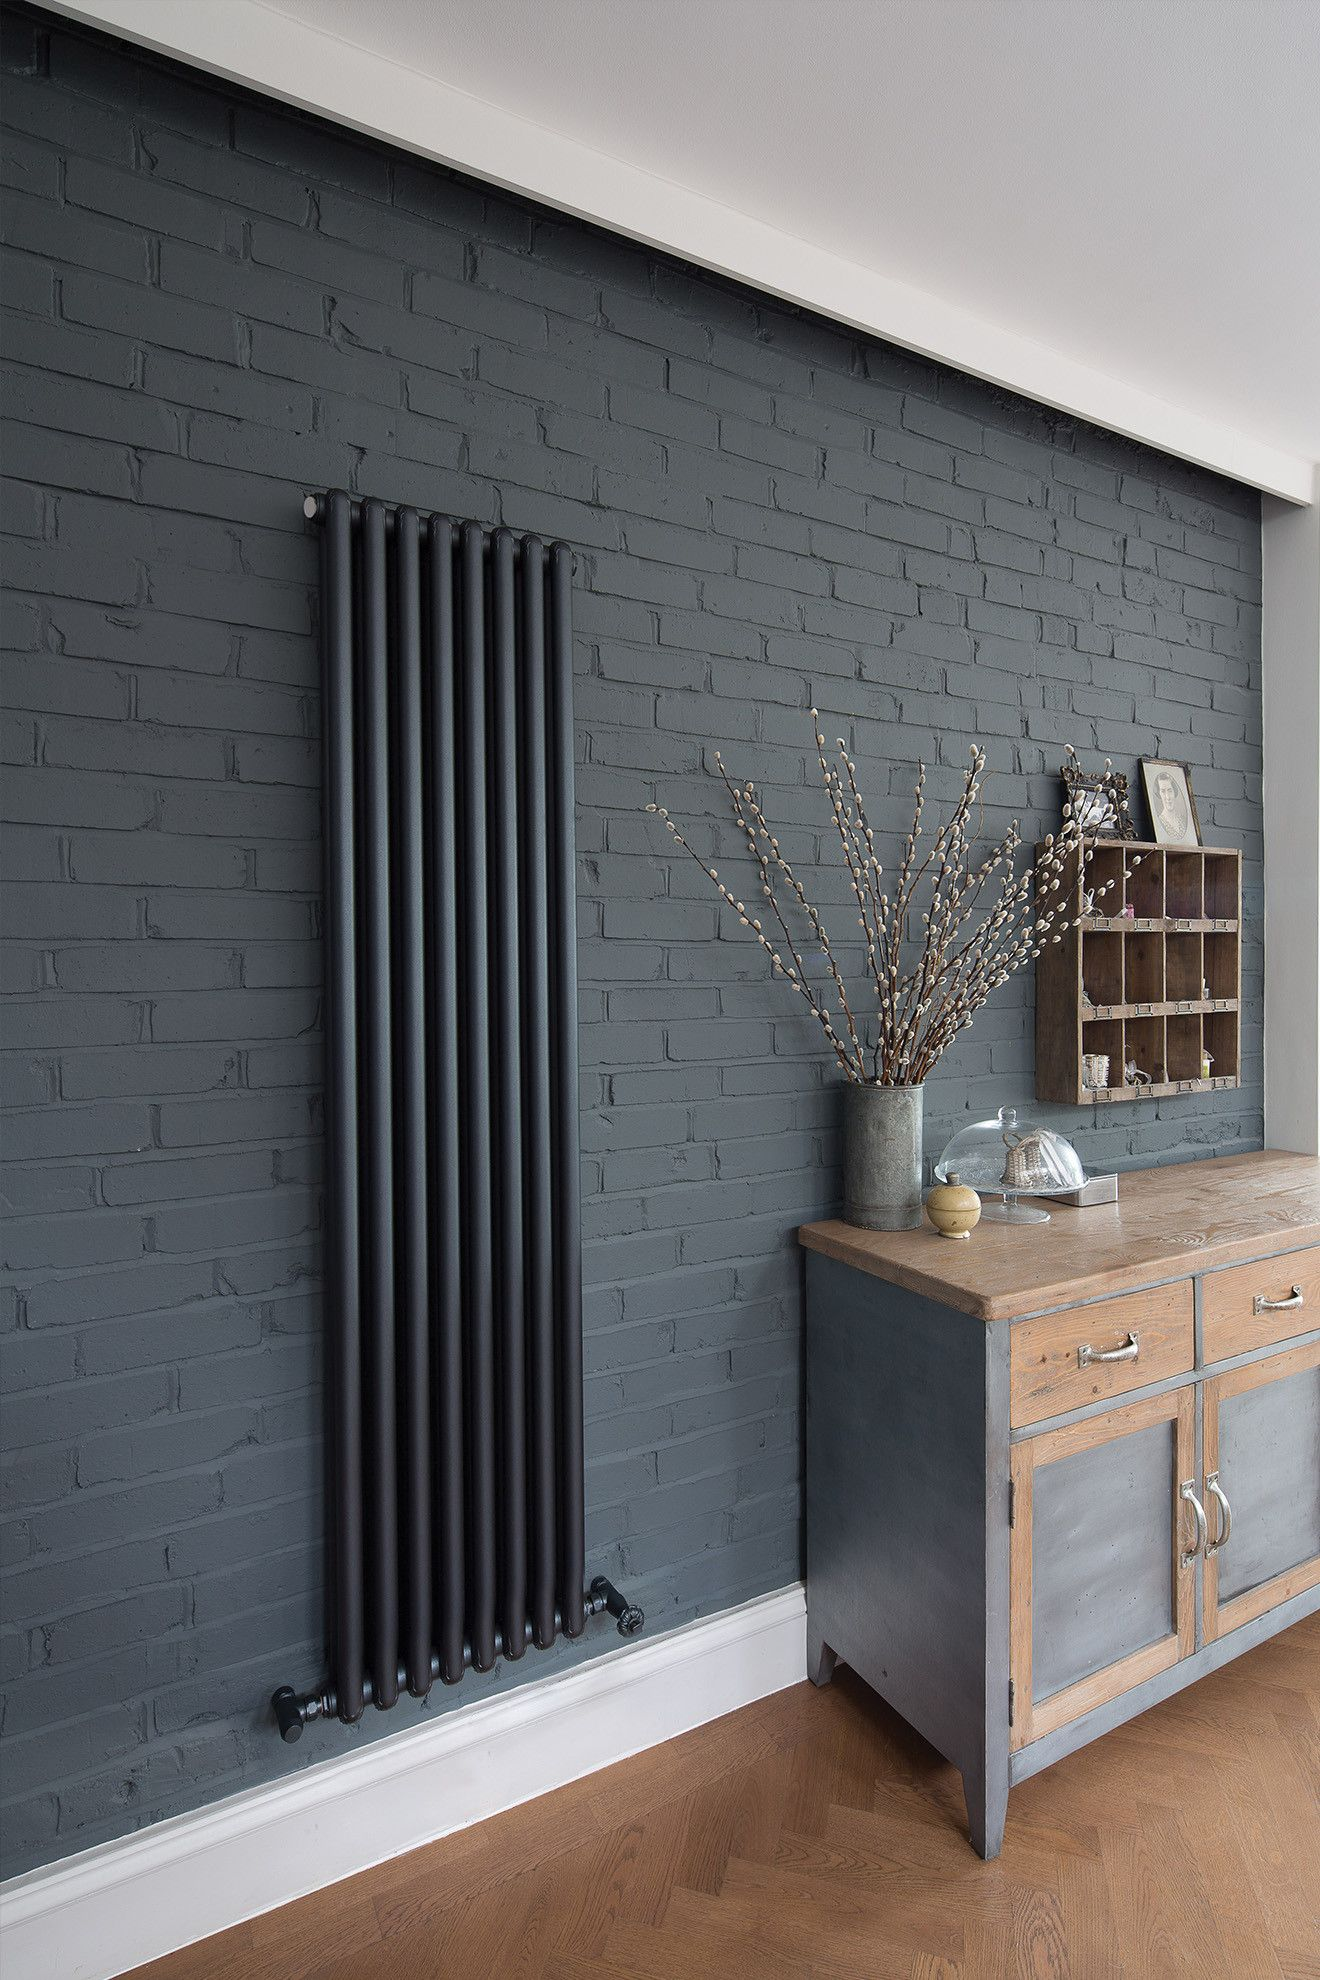 Bisque Radiators The New Feature Of The Home Brick Interior